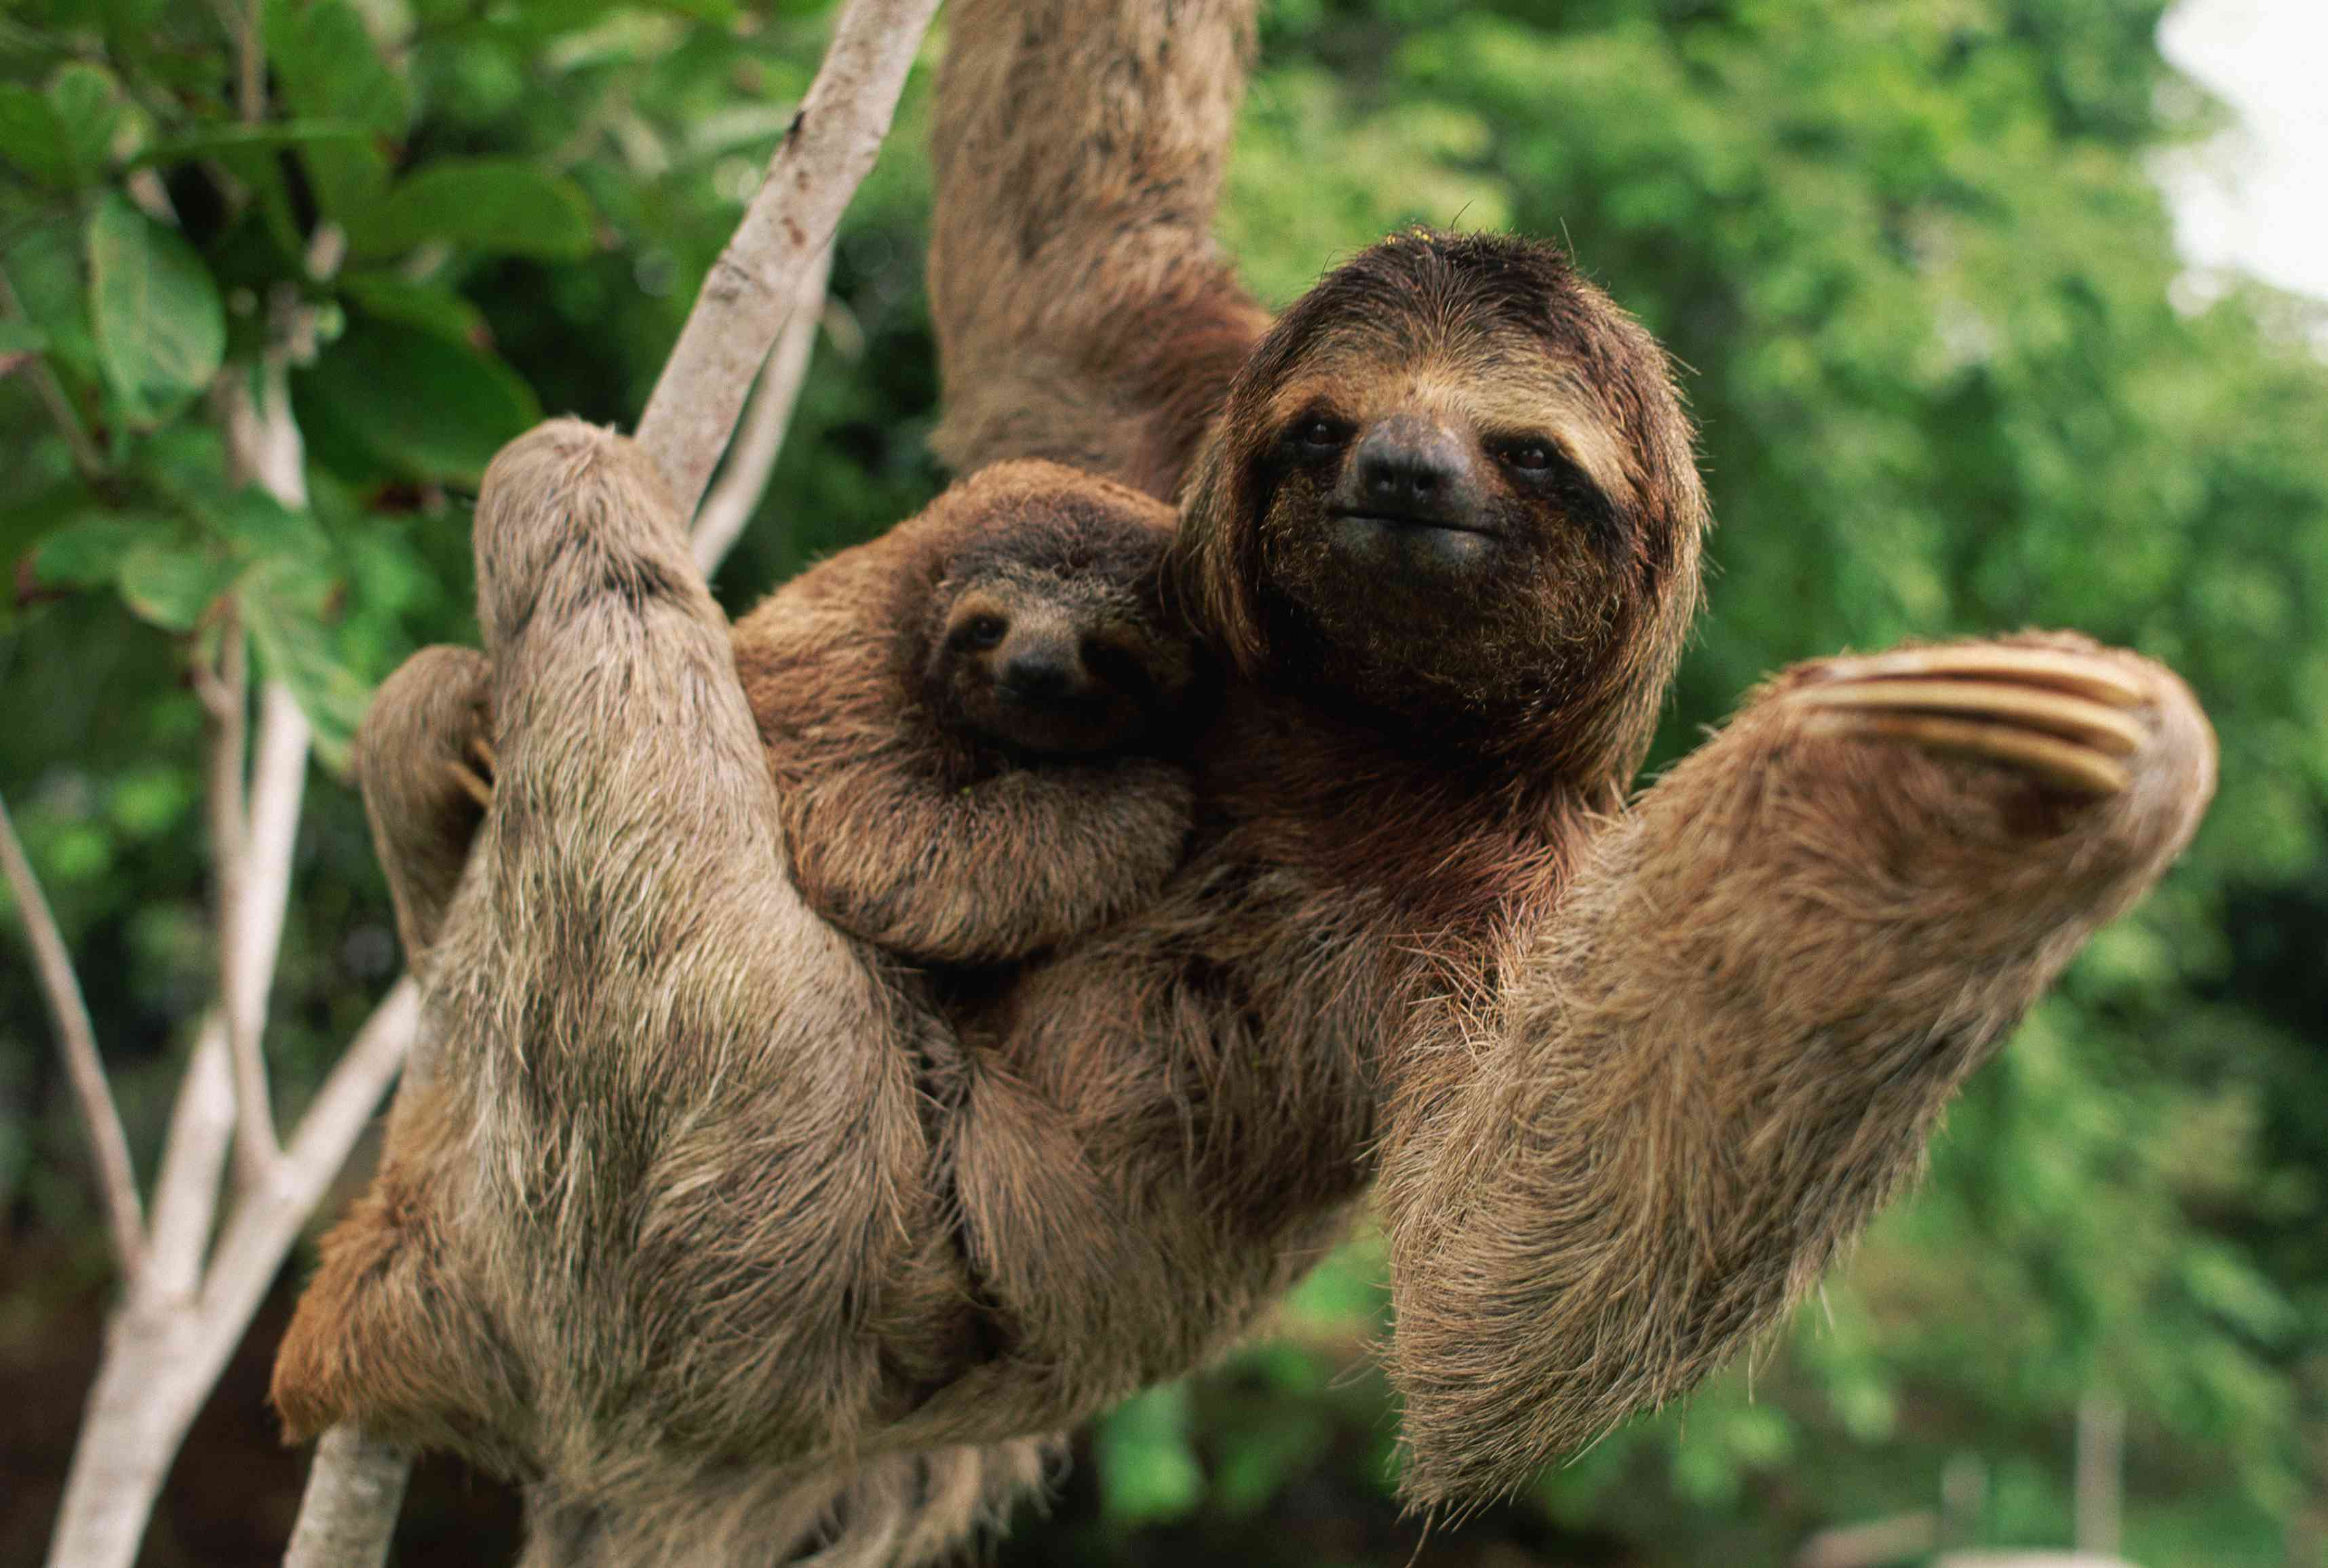 Wild sloths in Corcovado National Park, Costa Rica